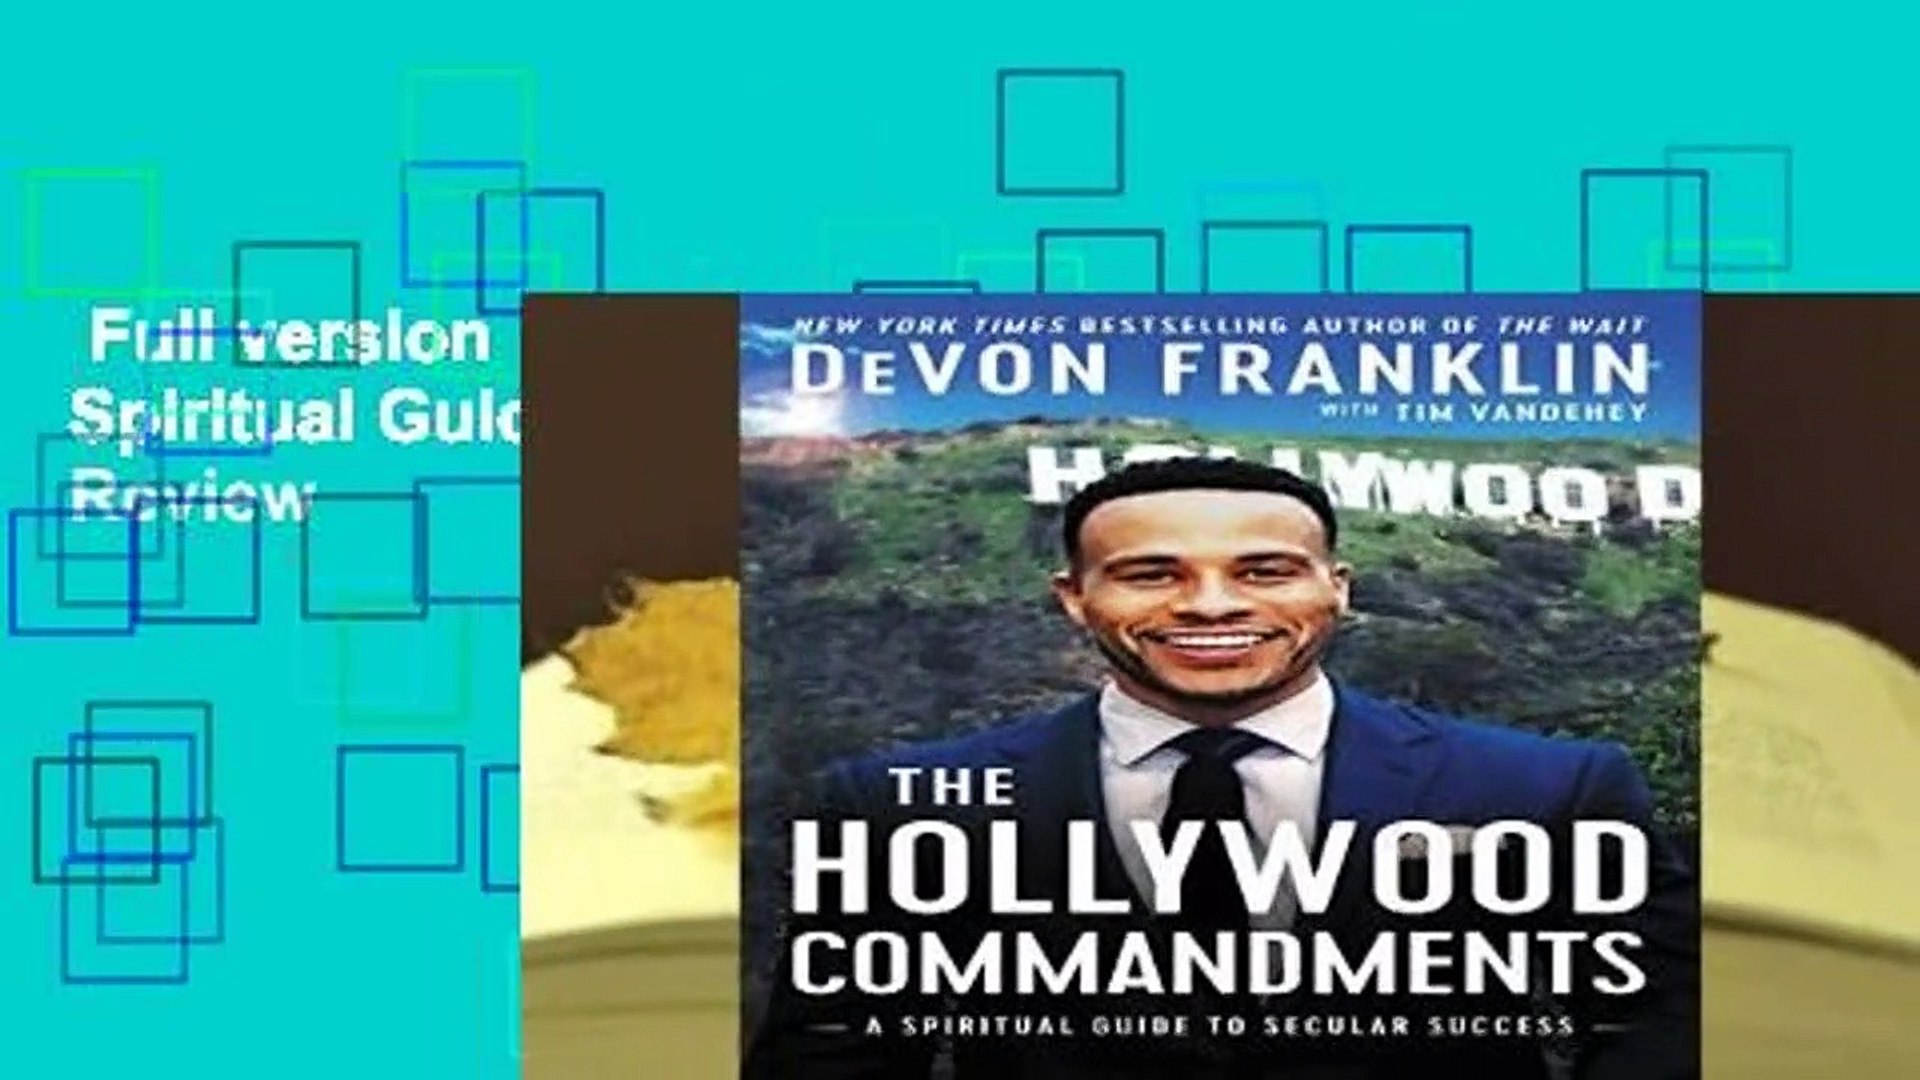 Full version  The Hollywood Commandments: A Spiritual Guide to Secular Success  Review